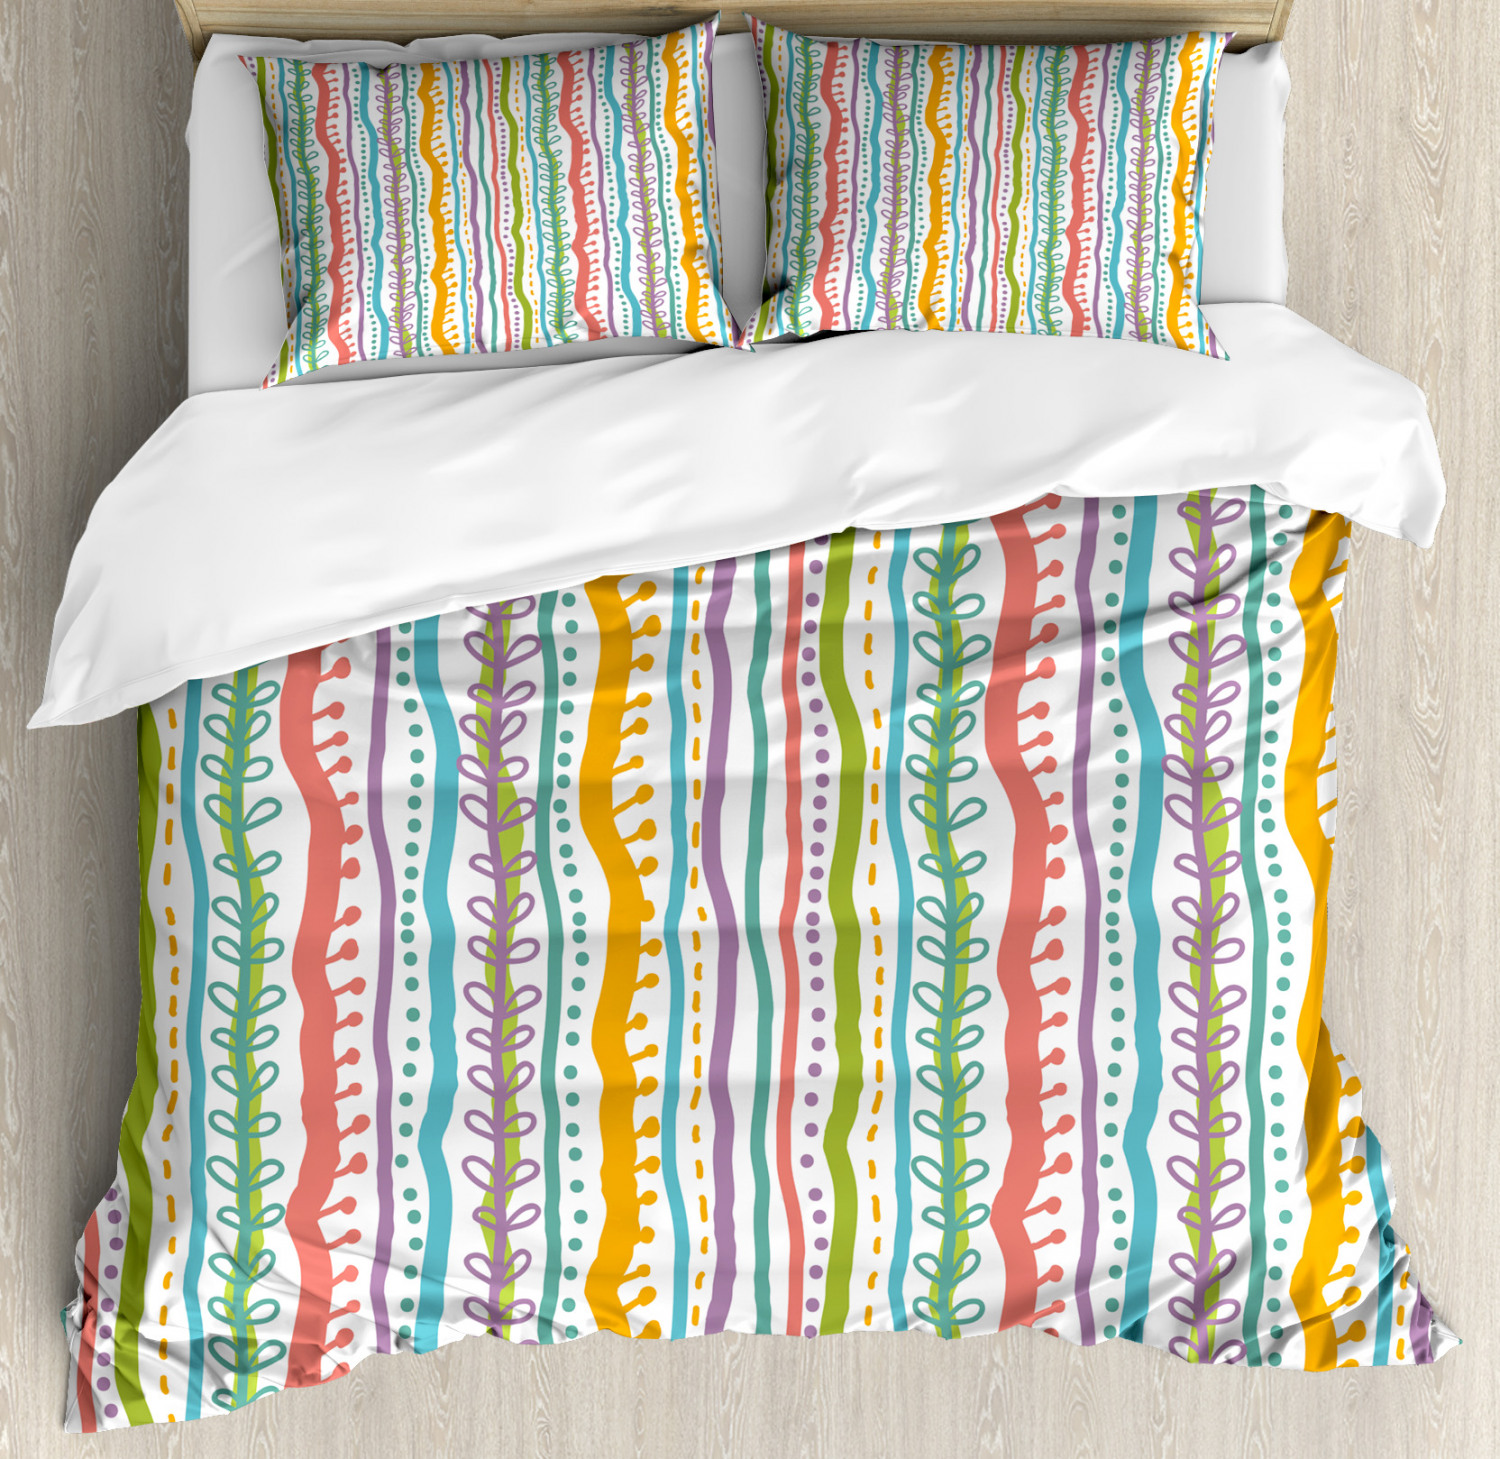 Abstract Duvet Cover Set with Pillow Shams verdeical Swirl Lines Print